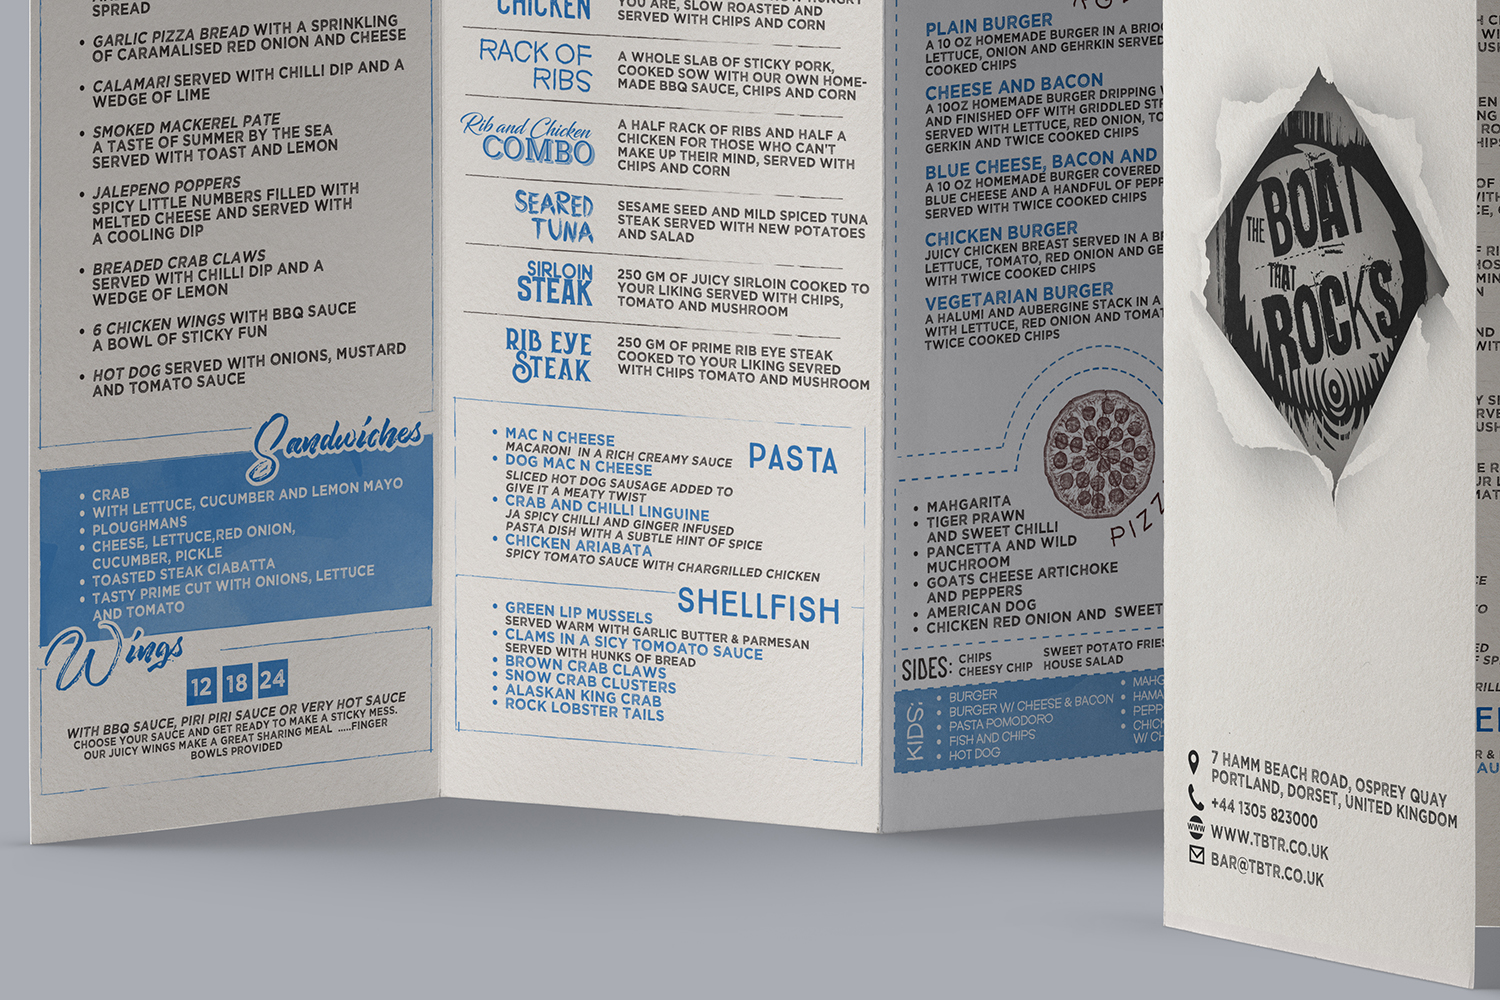 Playful Modern Restaurant Menu Design For Rocking Boat Restaurants Ltd By Mrmrnjr Design 14139866